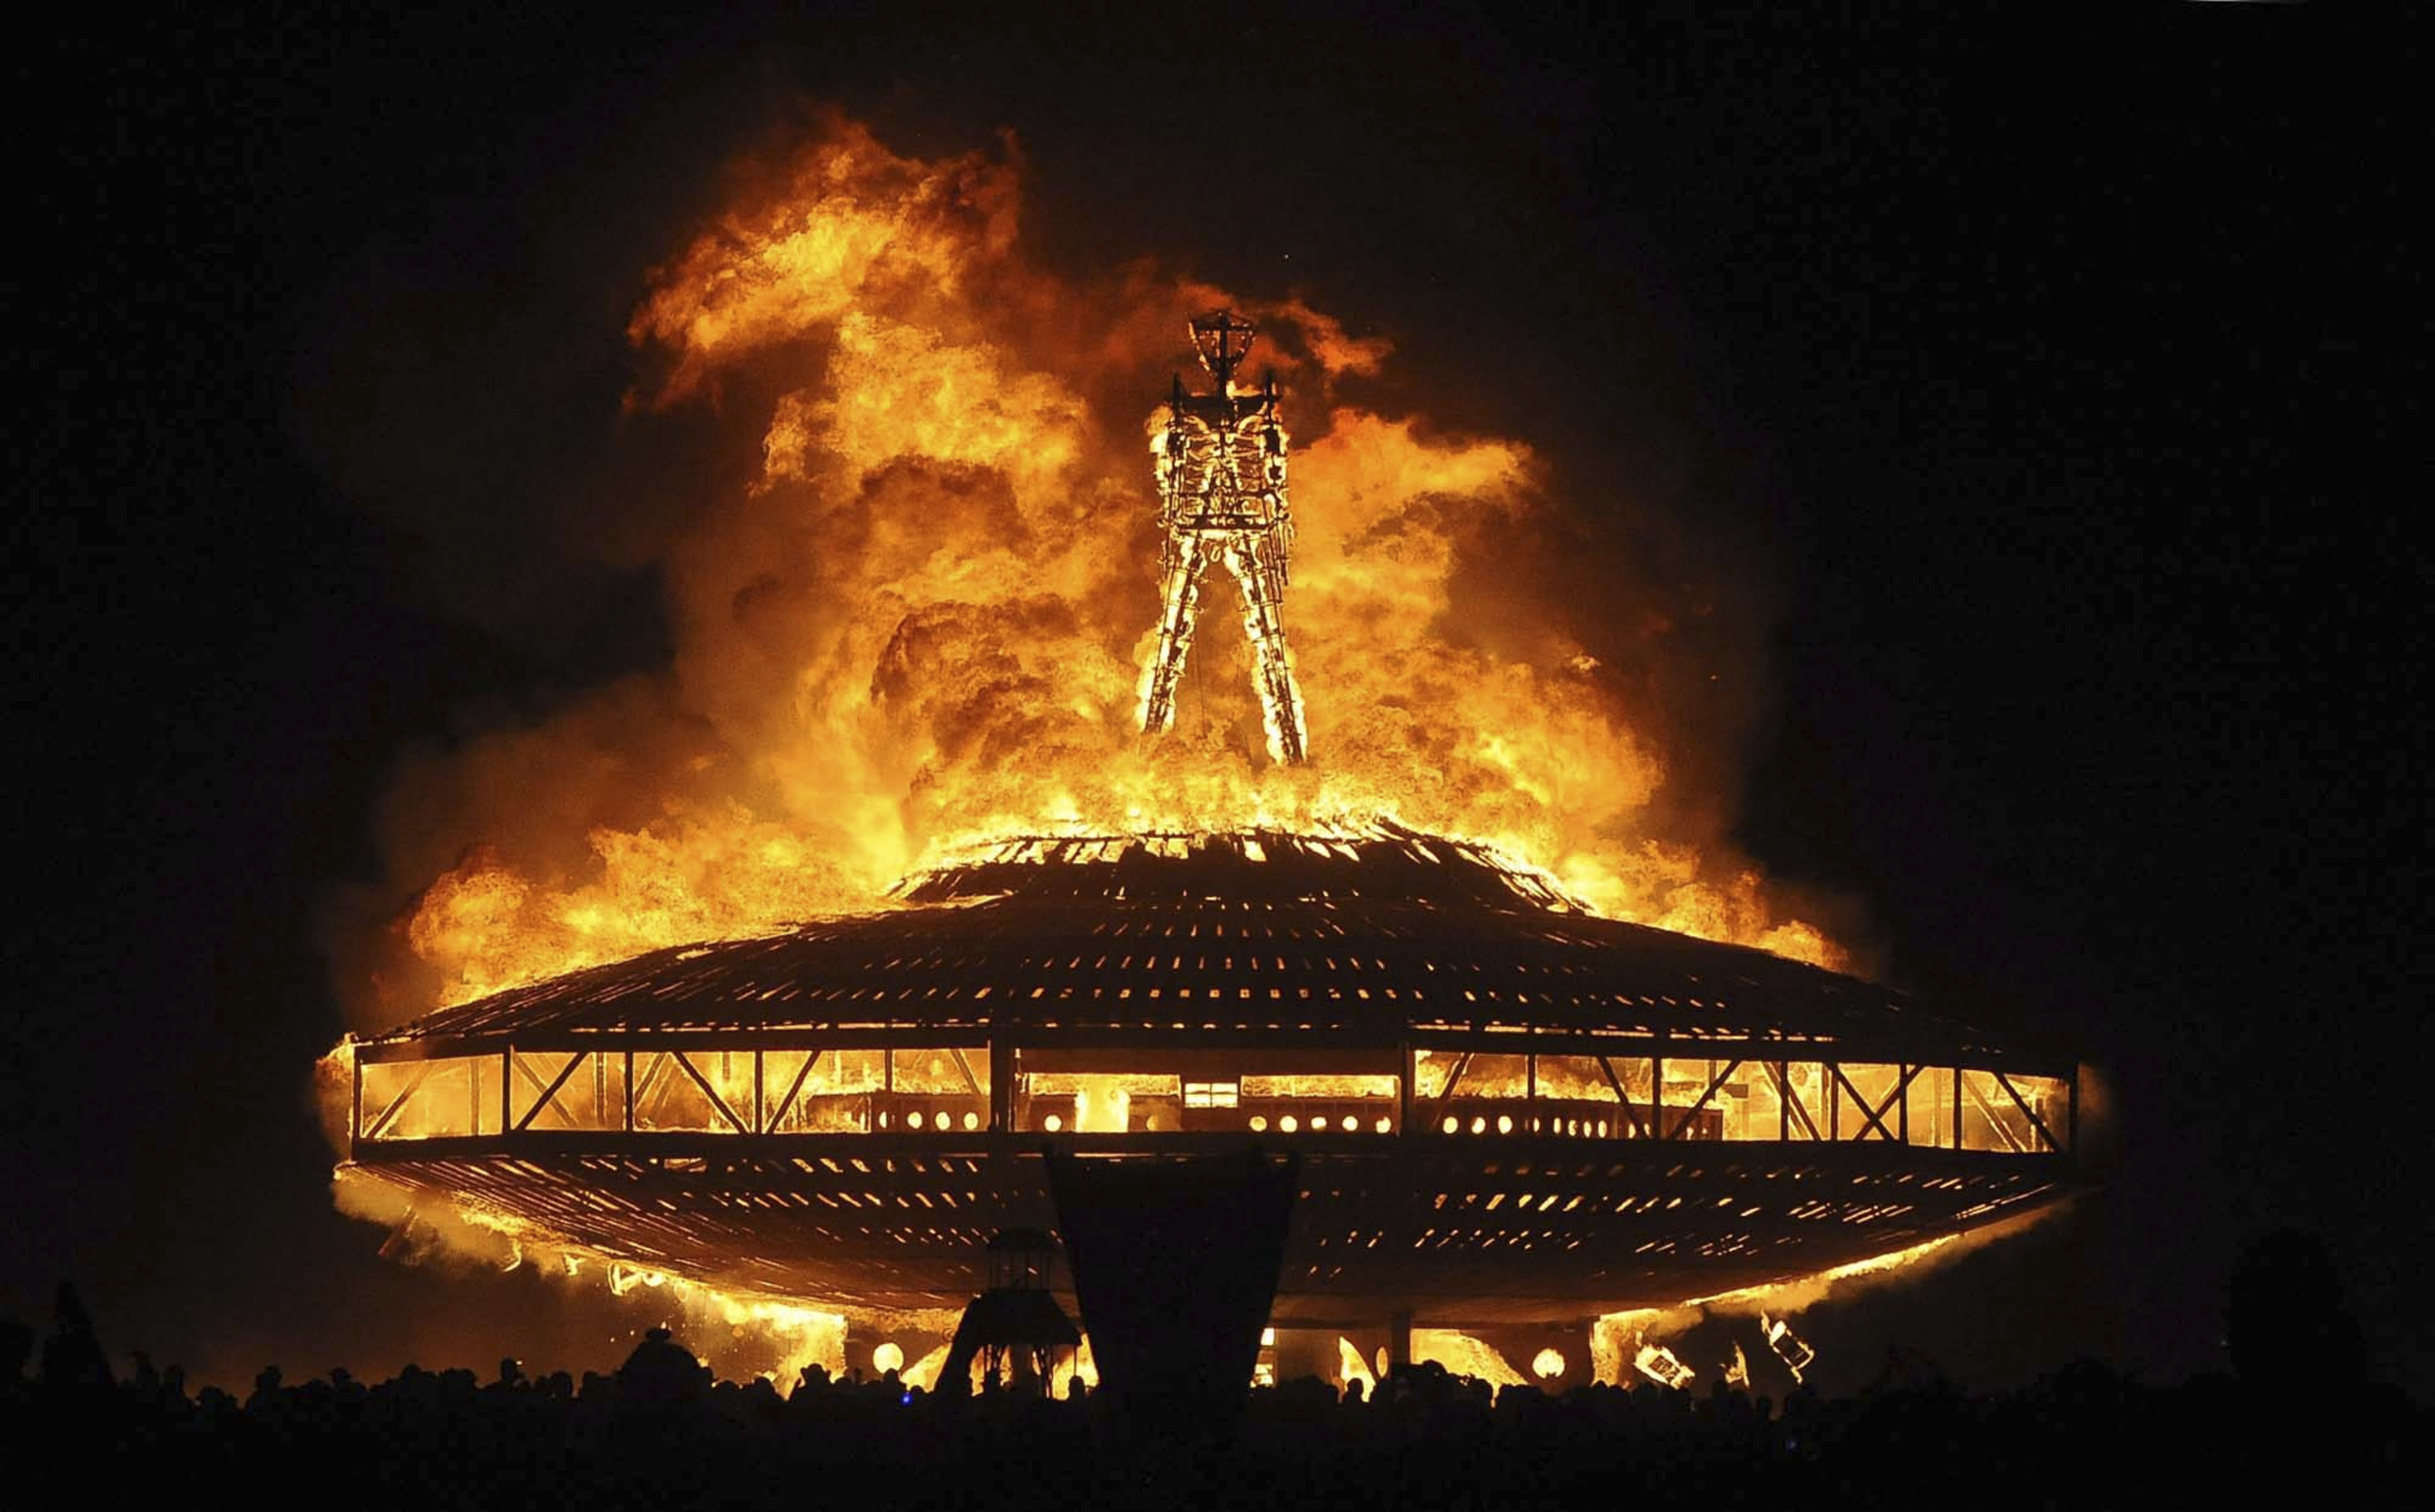 A Man Has Died After Rushing Into a Fire at Burning Man Festival